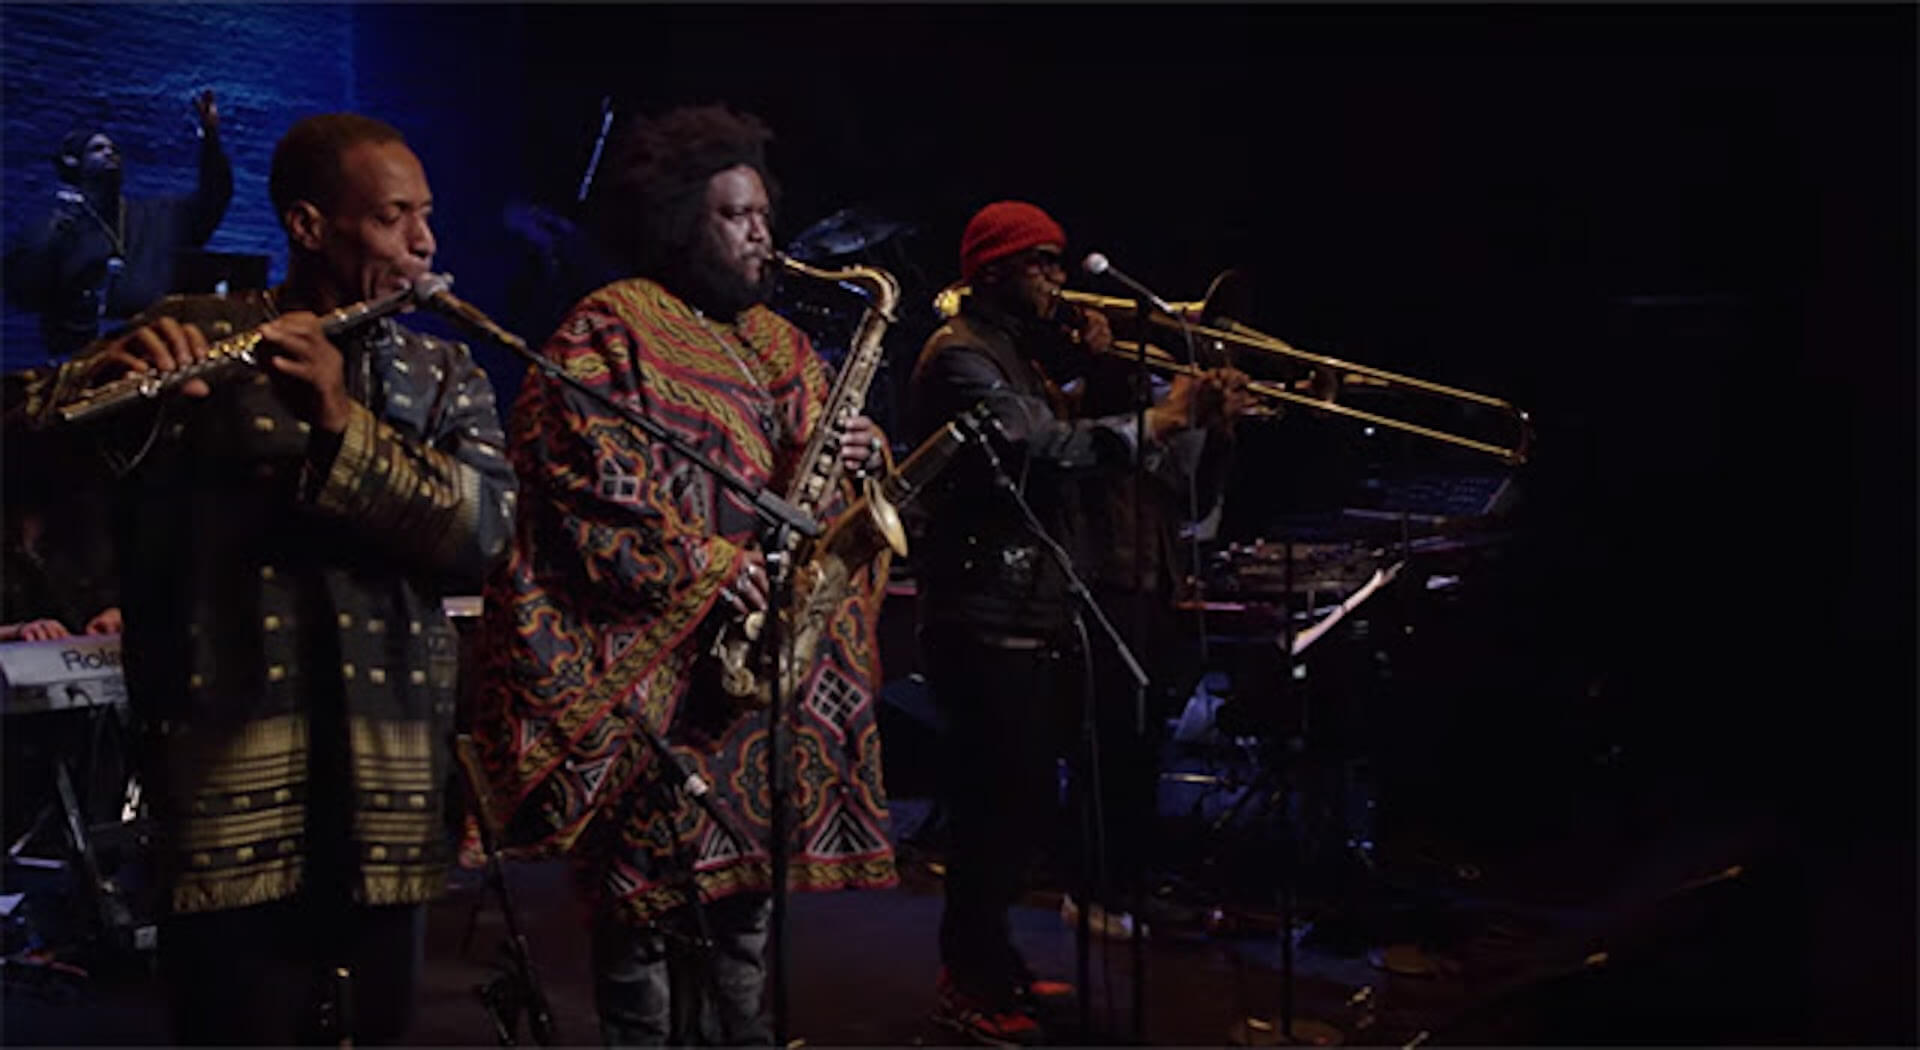 カマシ・ワシントン、ドキュメンタリー映画『Kamasi Washington Live at The Apollo Theater』をAmazon Primeで公開 music200204_kamasiwashinton_1